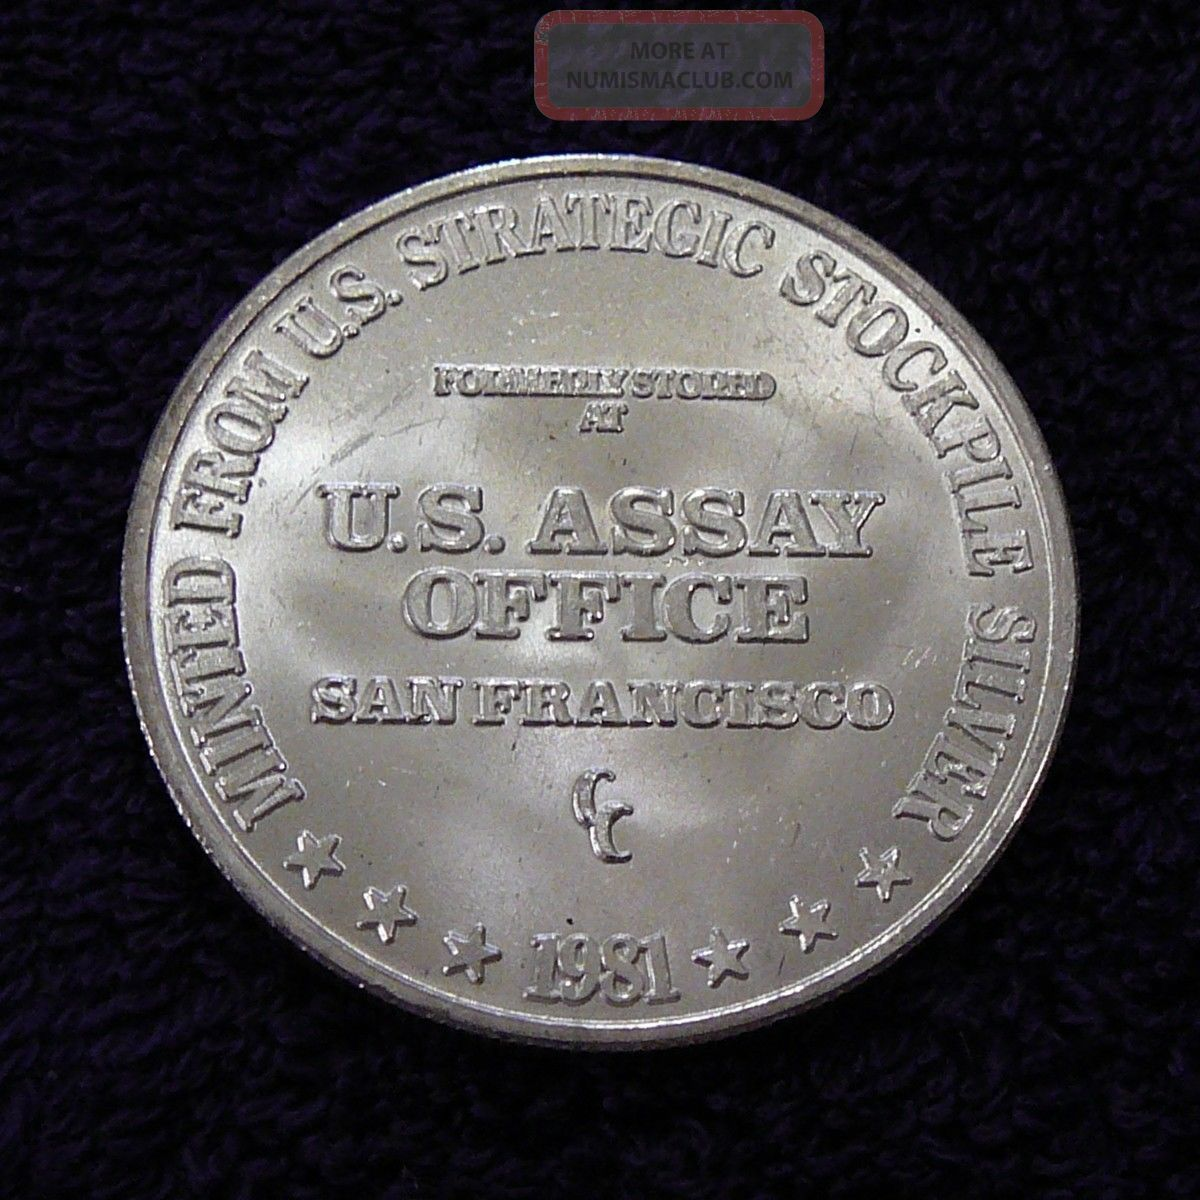 1981 U S Assay Office 1 Oz 999 Fine Silver Round